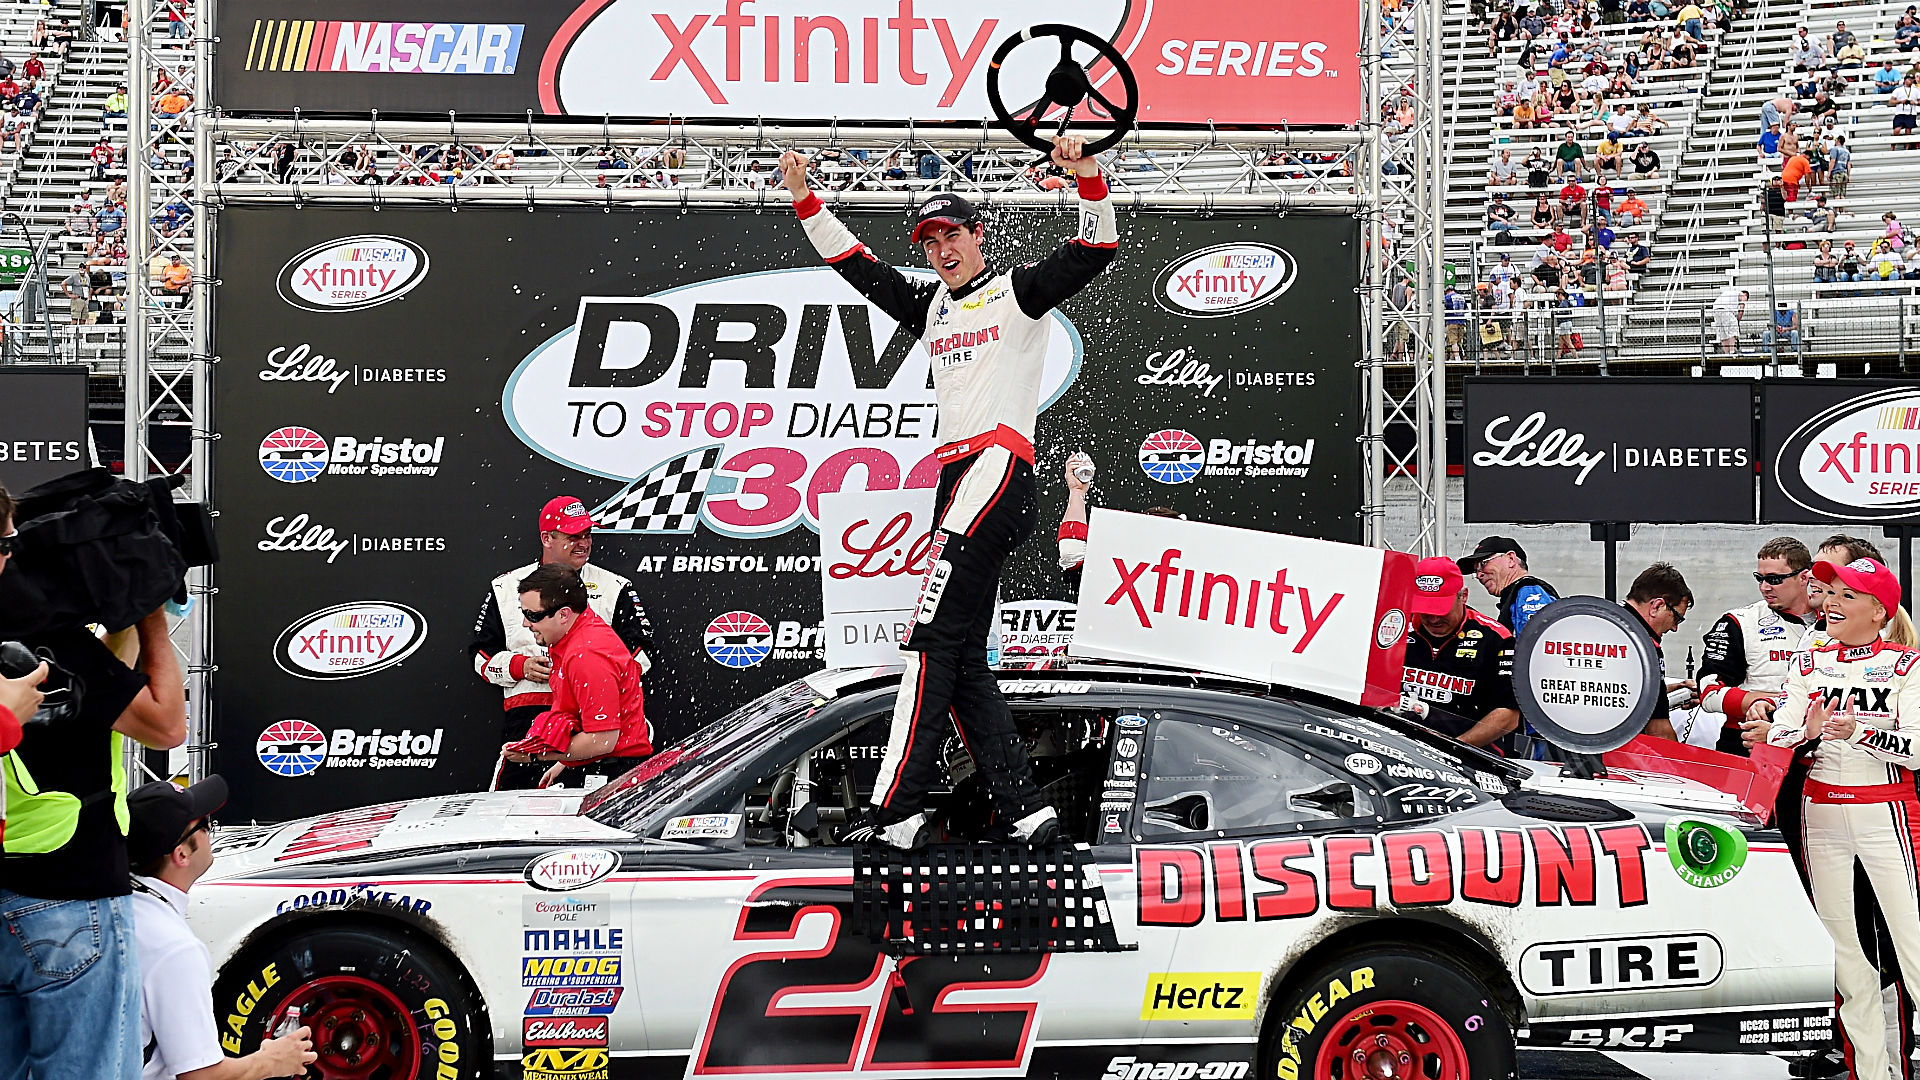 Joey Logano leads every lap to win Xfinity Series race at Bristol